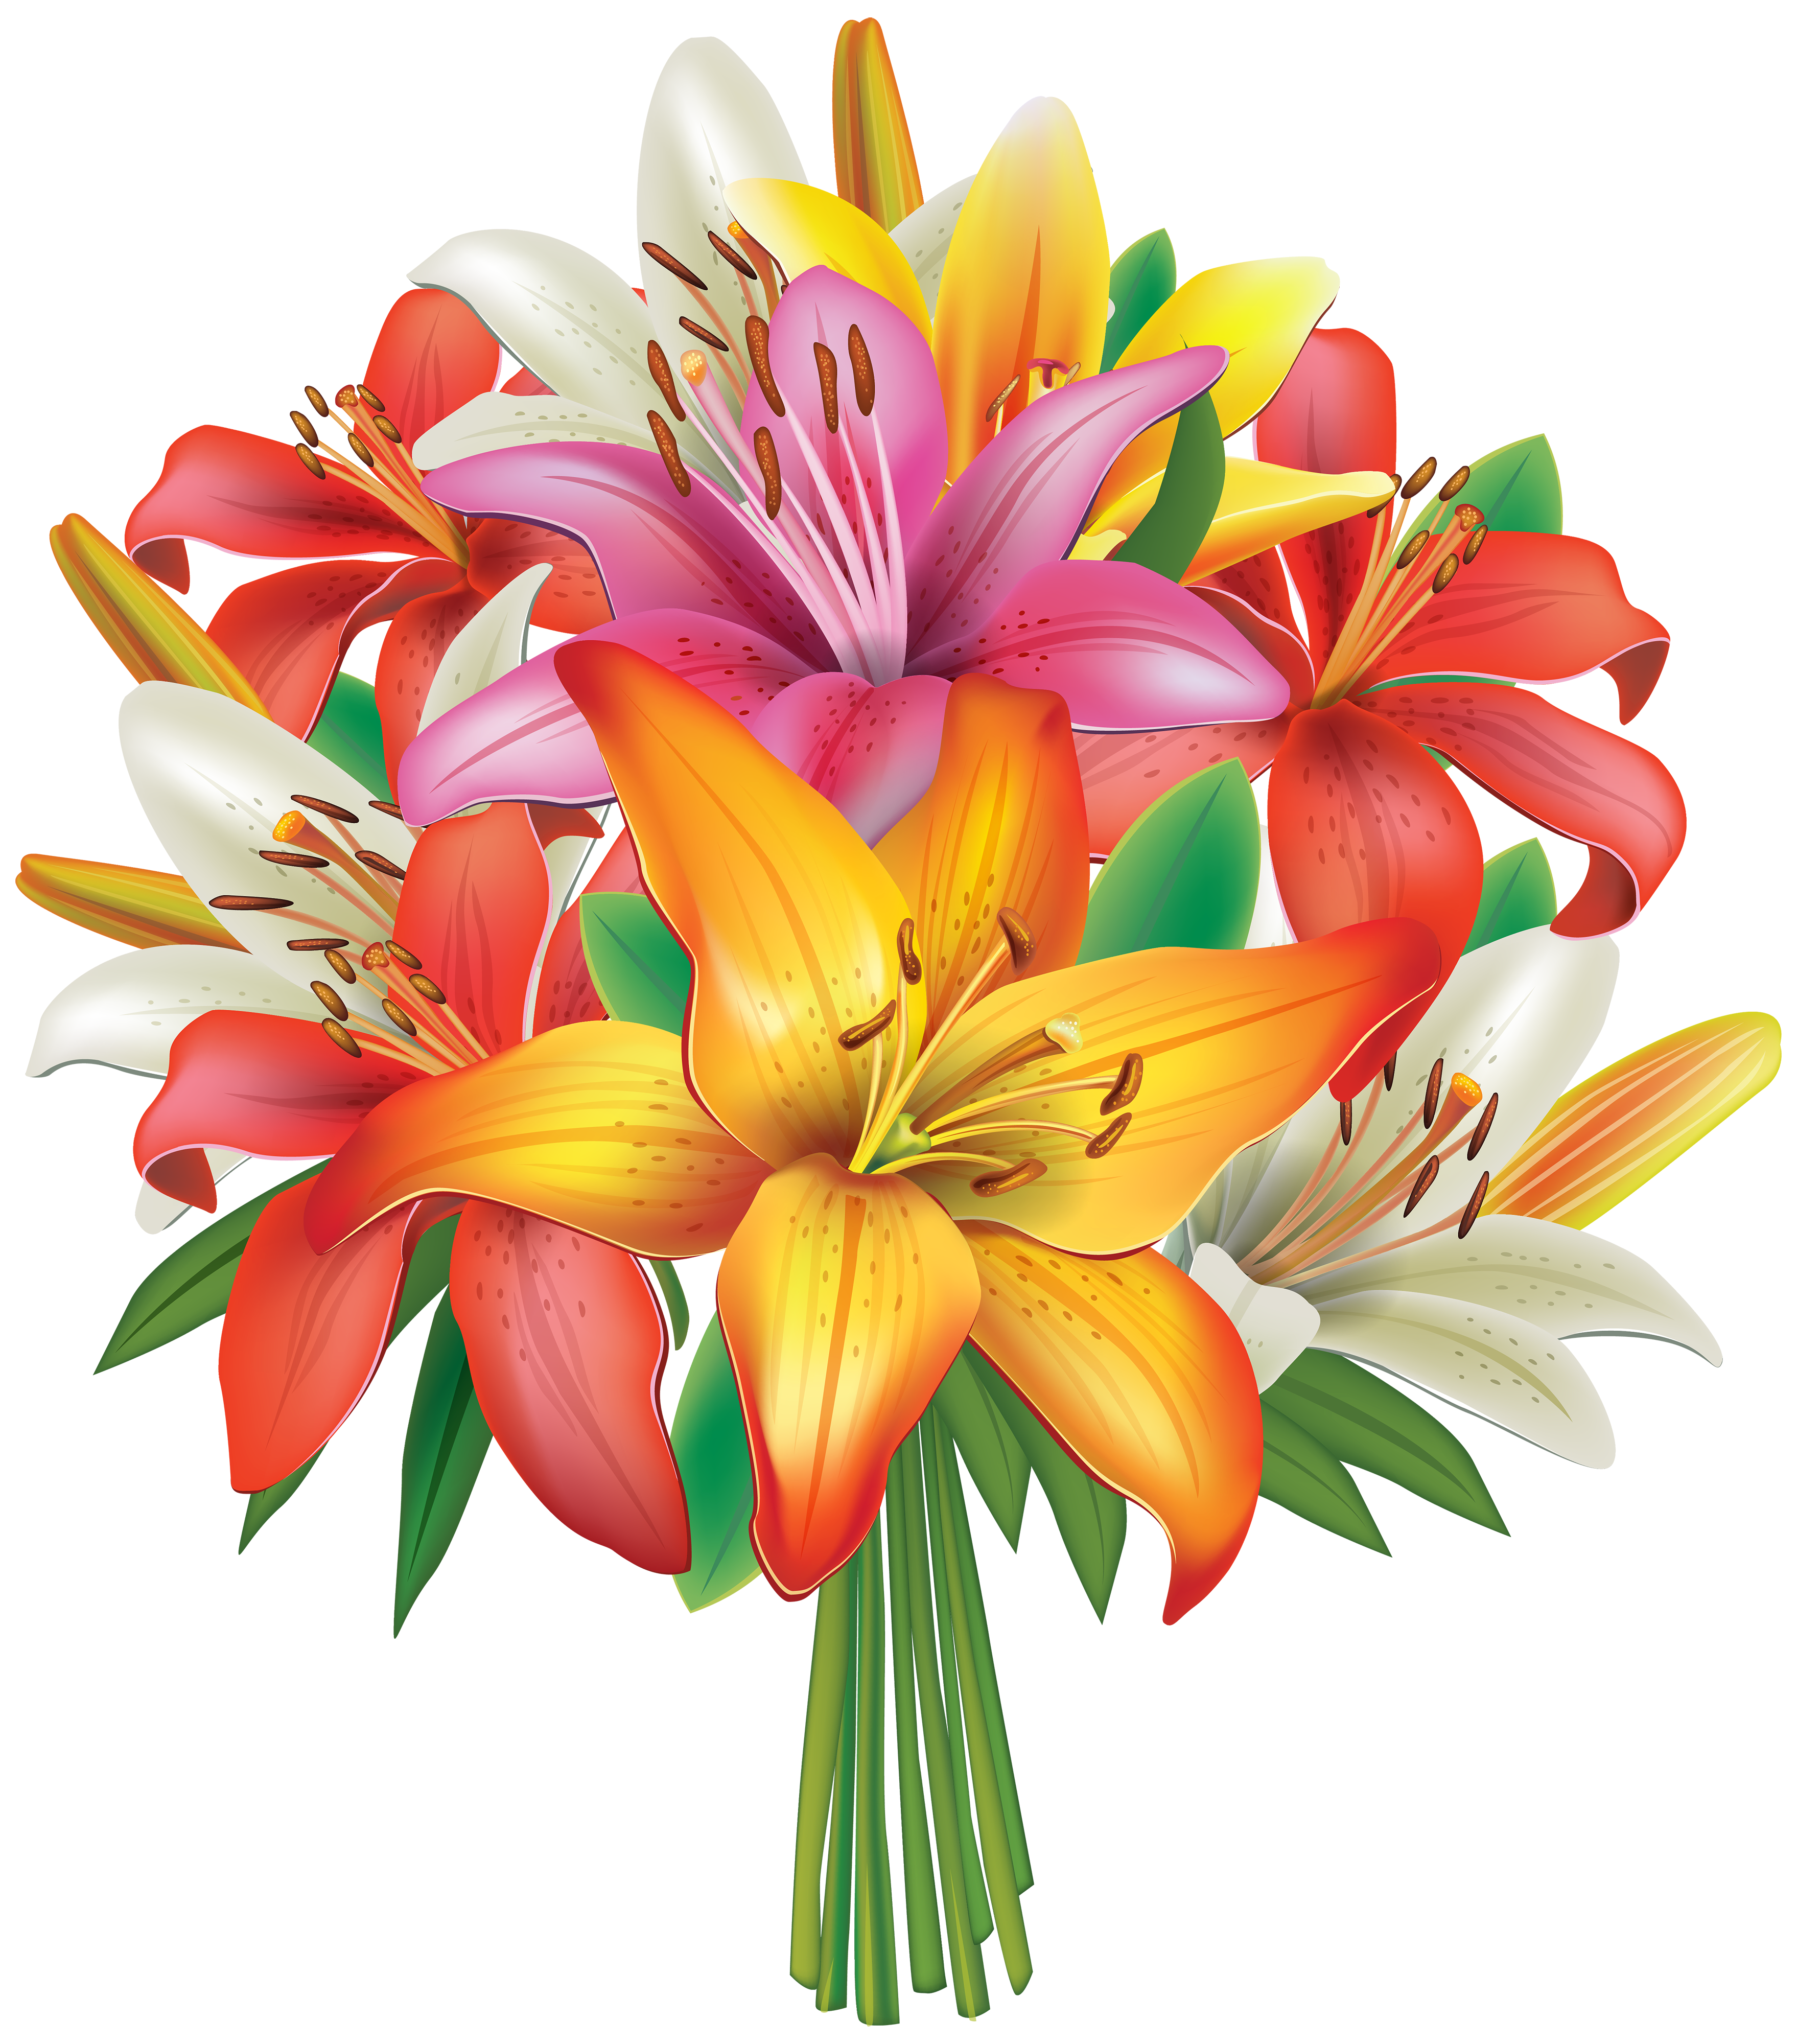 Flower bunch clipart - Flower PNG Jpg